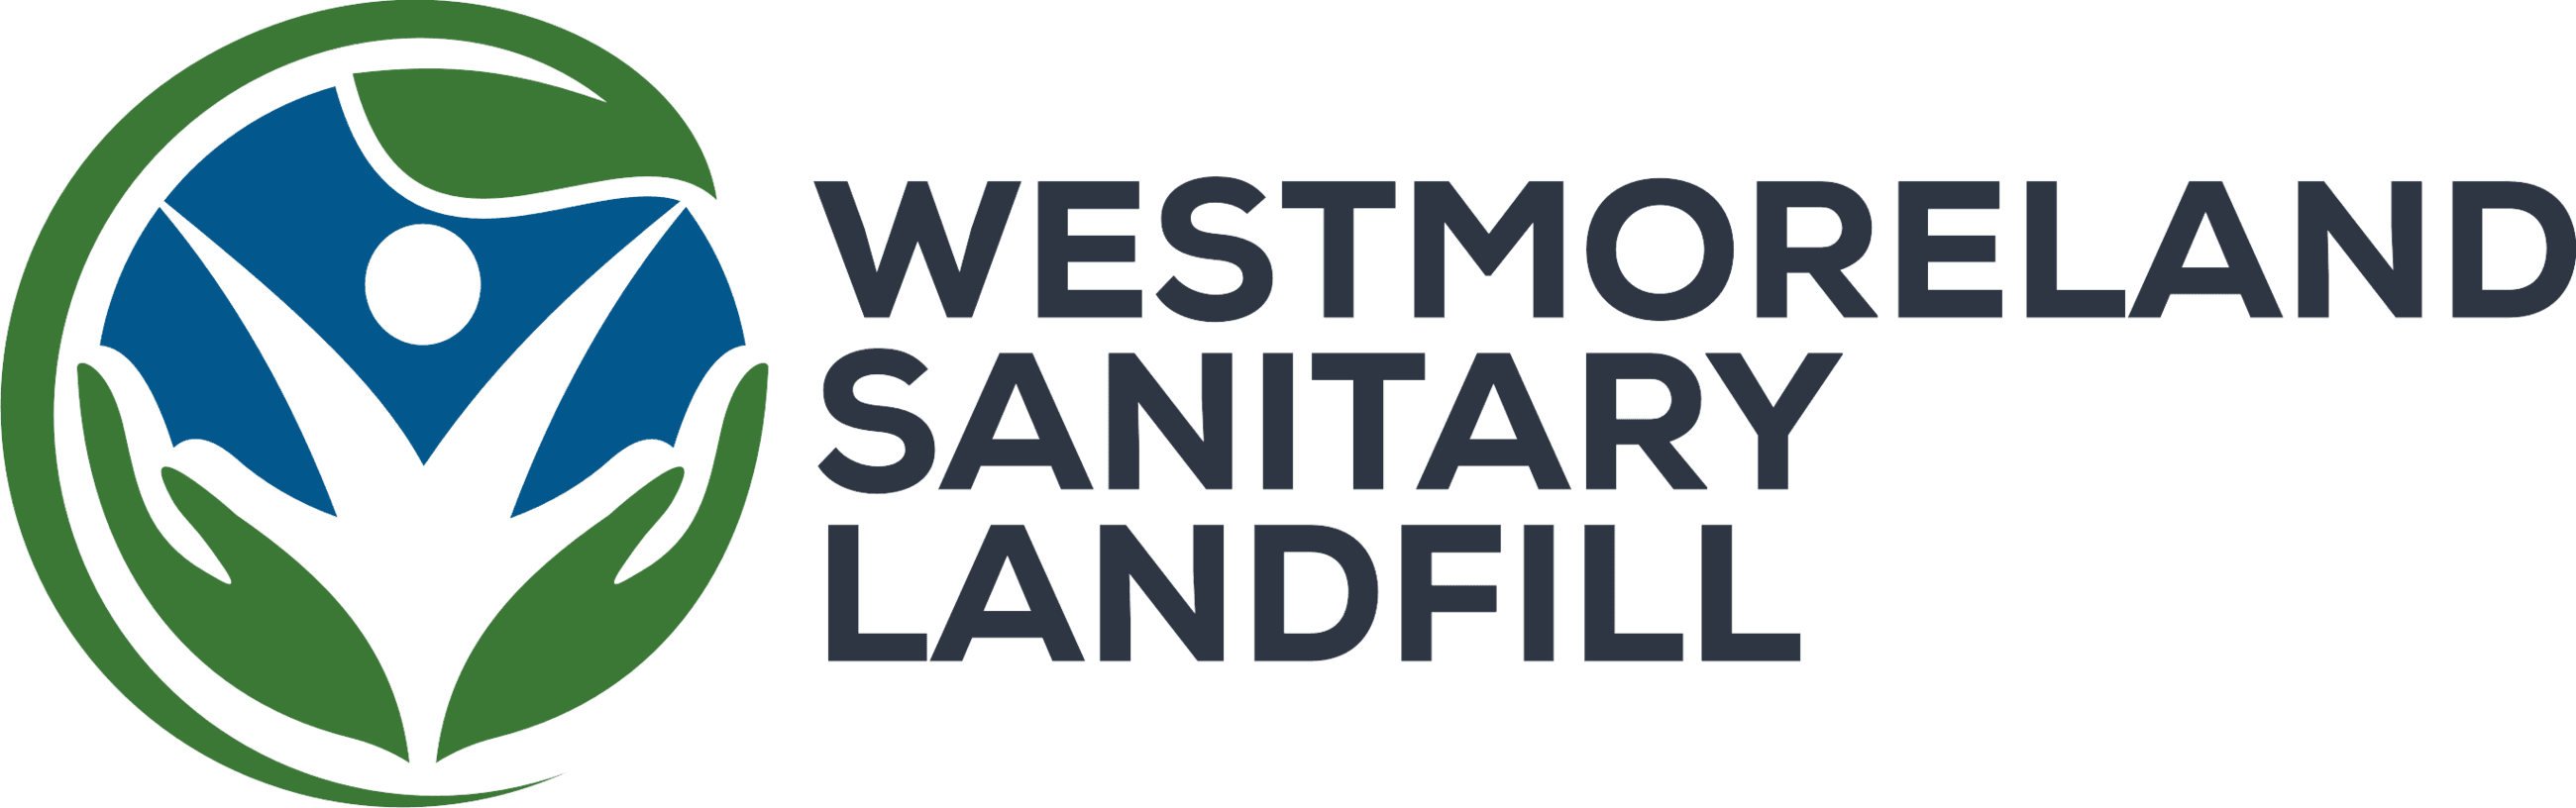 Logo for the company Westmoreland Sanitary Landfill containing the words Westmoreland Sanitary Landf